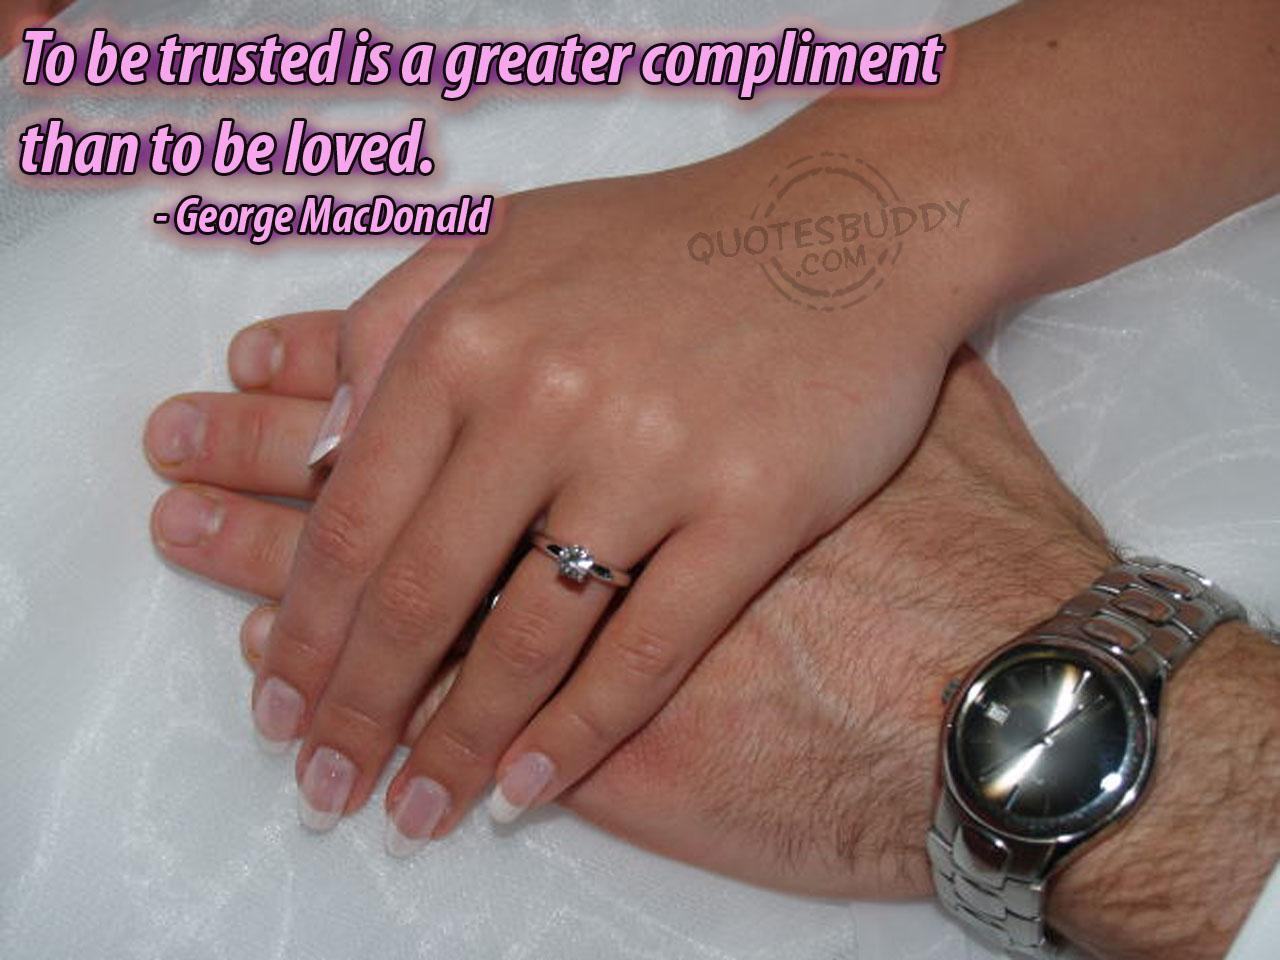 To Be Trusted Is a Greater Compliment Than To Be Loved